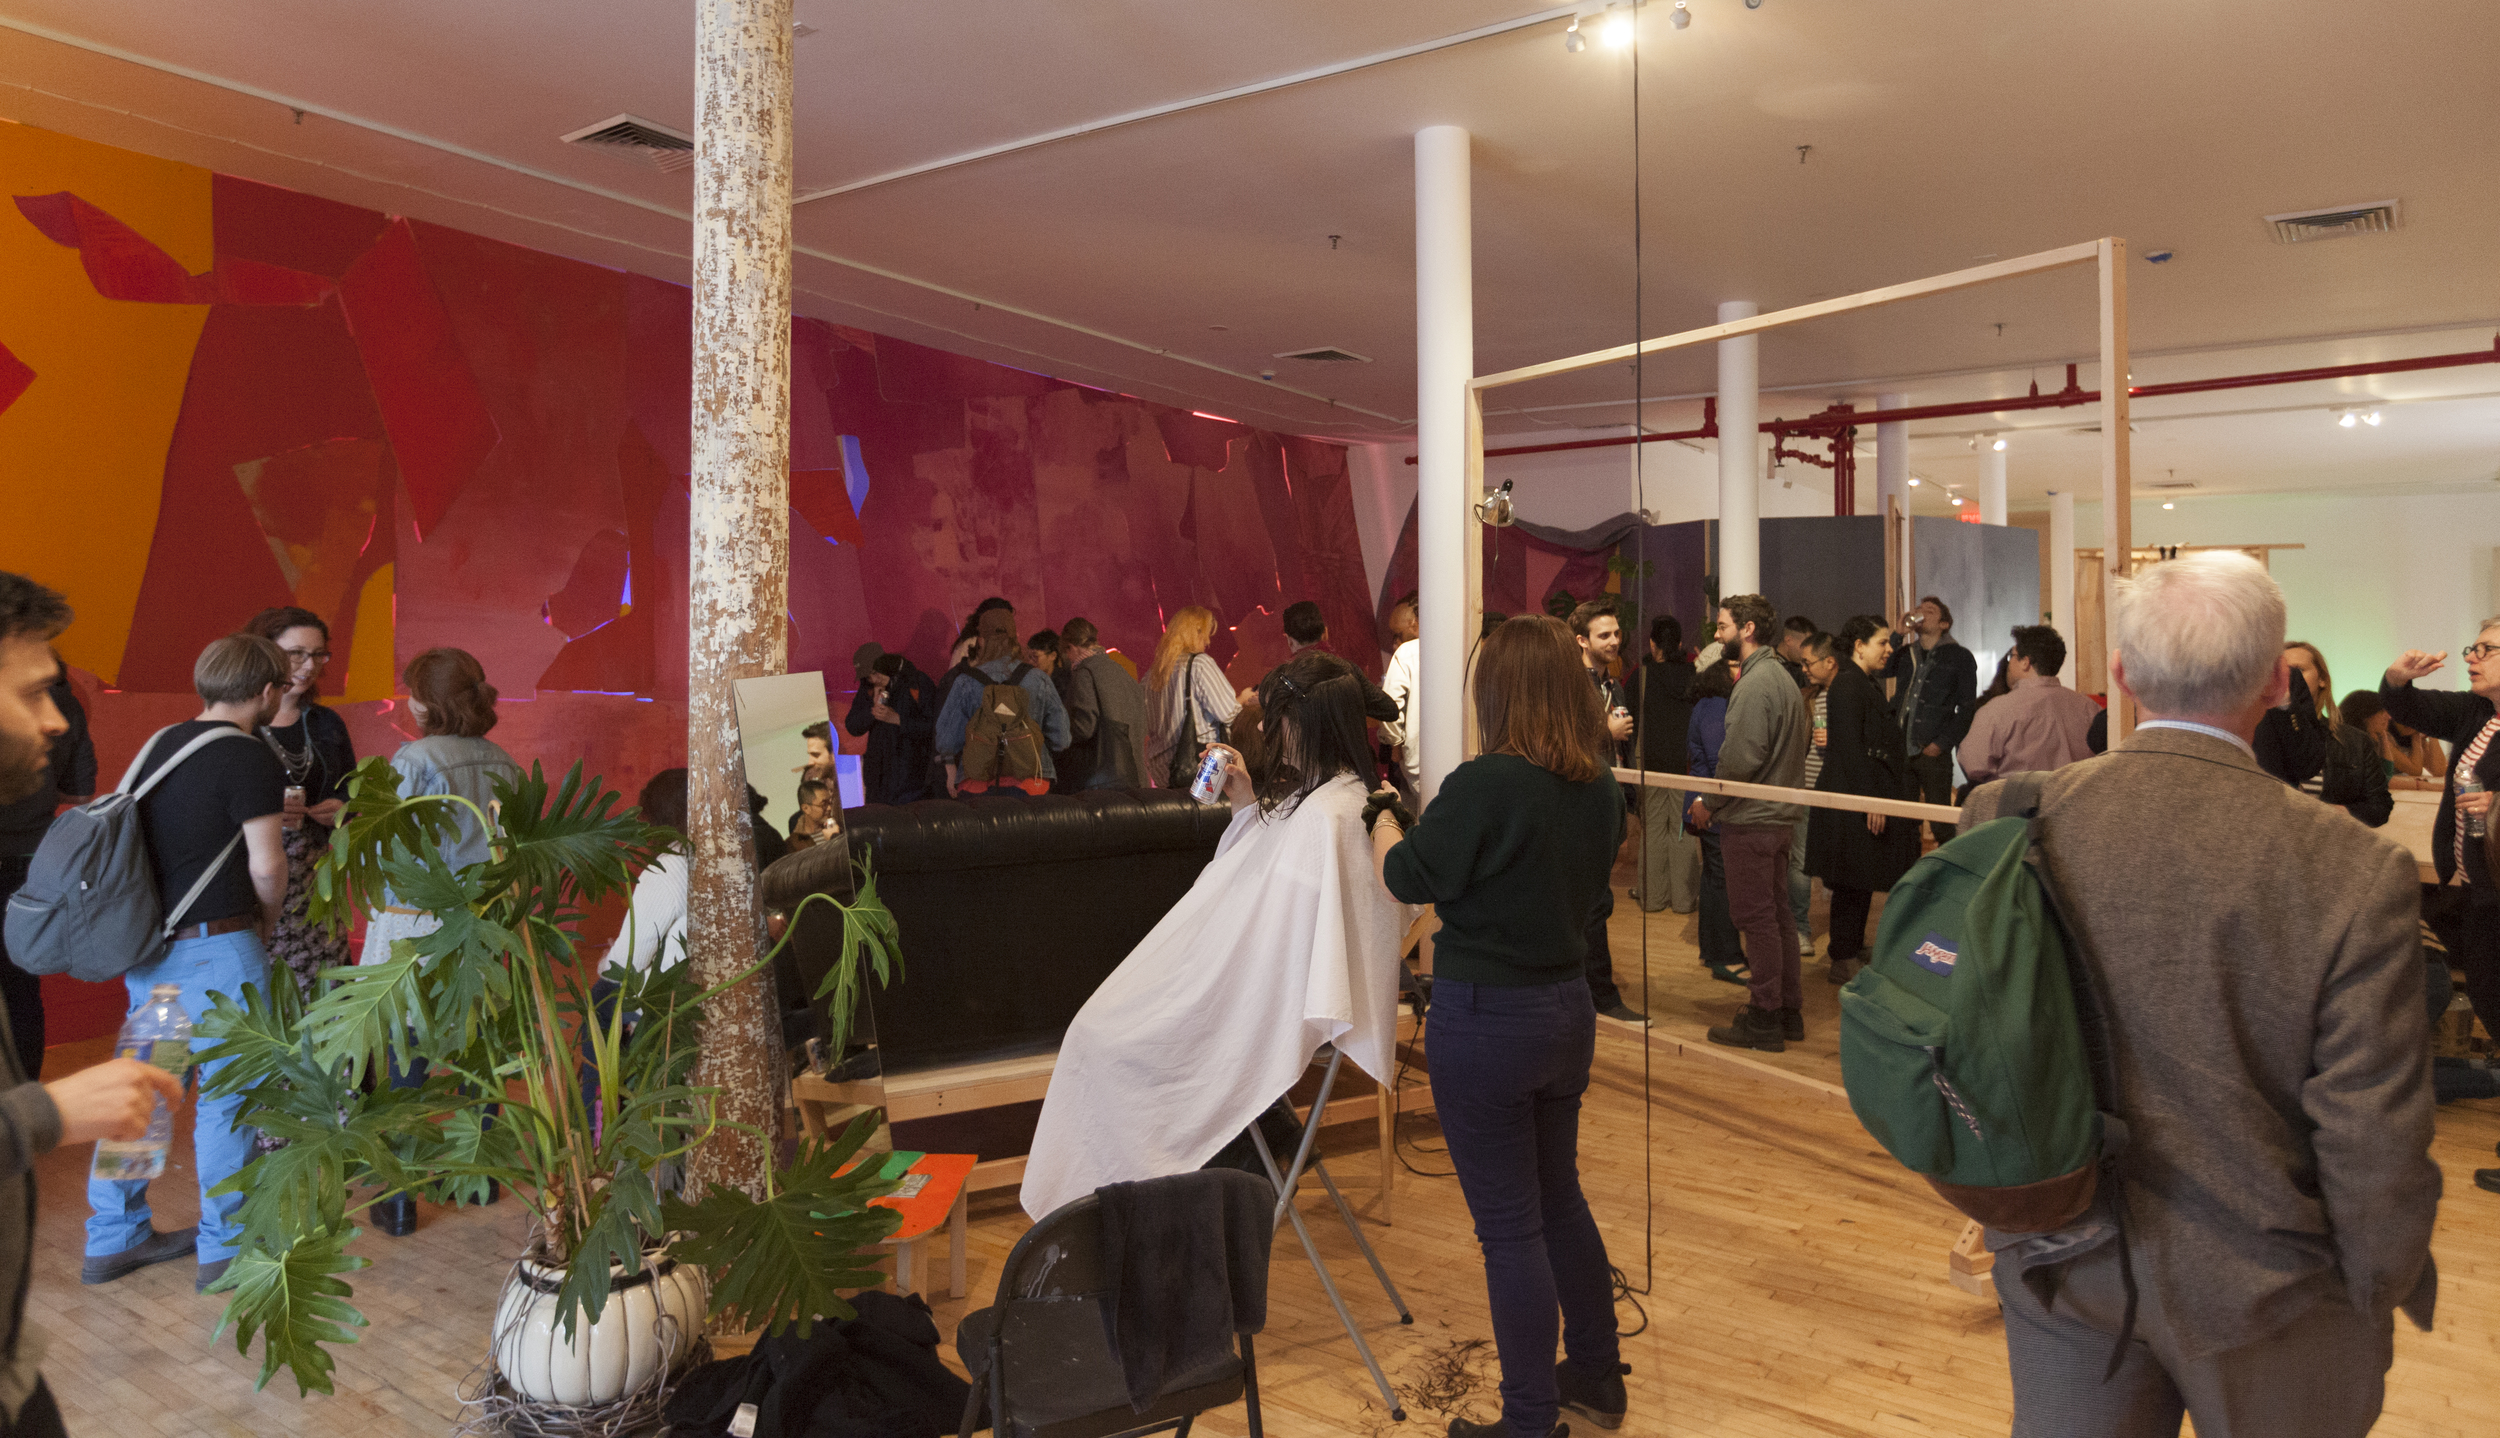 Foreground: Artist Brittany Mroczek cuts a clients hair at the opening of group show  you know it when you feel it  as part of Lisi Raskin's  RecuperativeTactics  . Background:  Flat Screen (Pink Wall)  by Lisi Raskin, Art in General, April 19, 2014. Image credit: Steven Probert